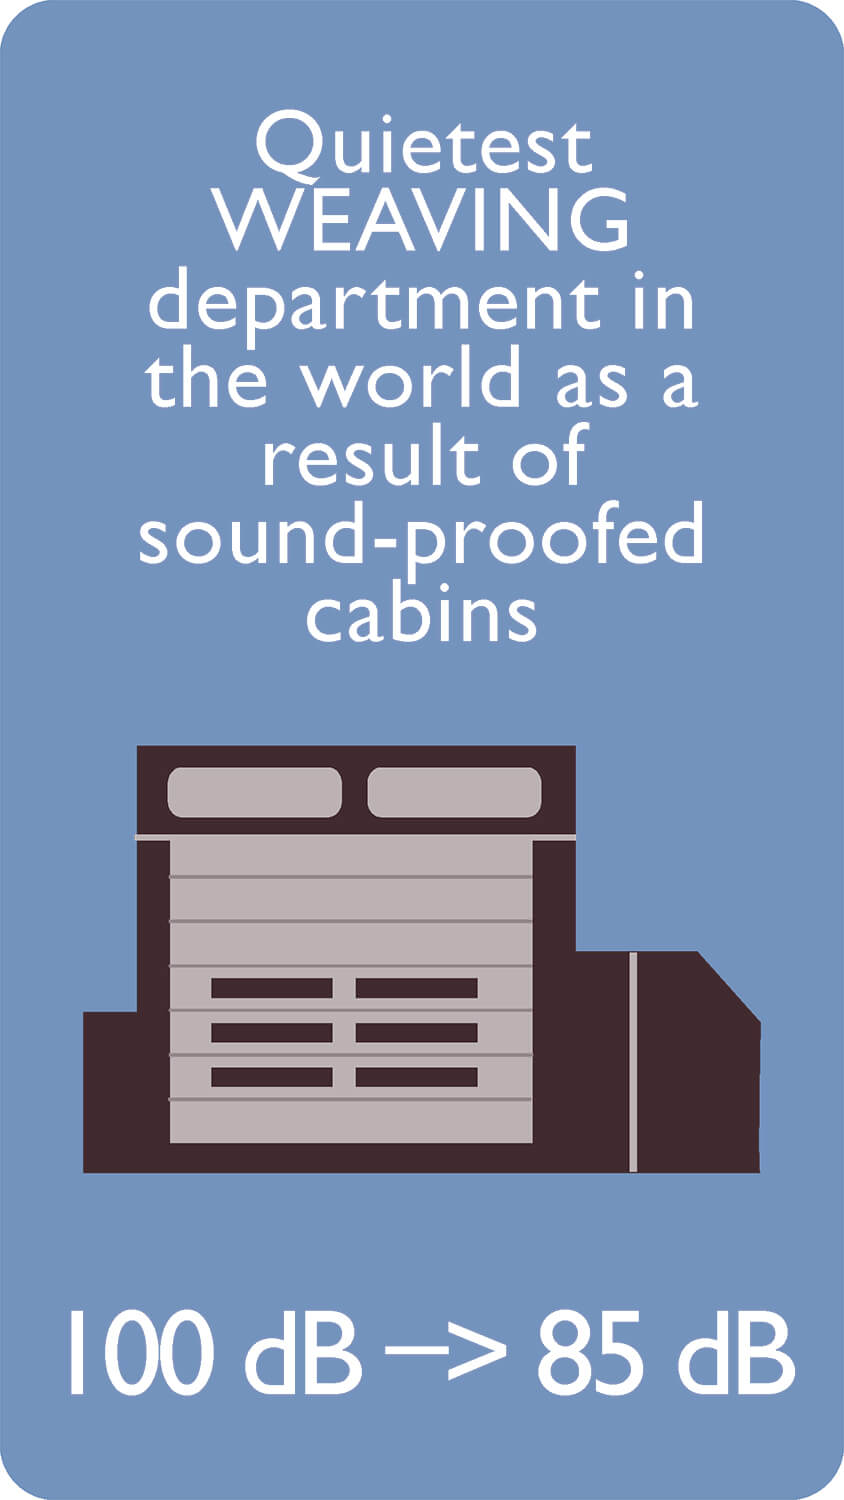 Quietest WEAVING department in the world as a result of sound-proofed cabins